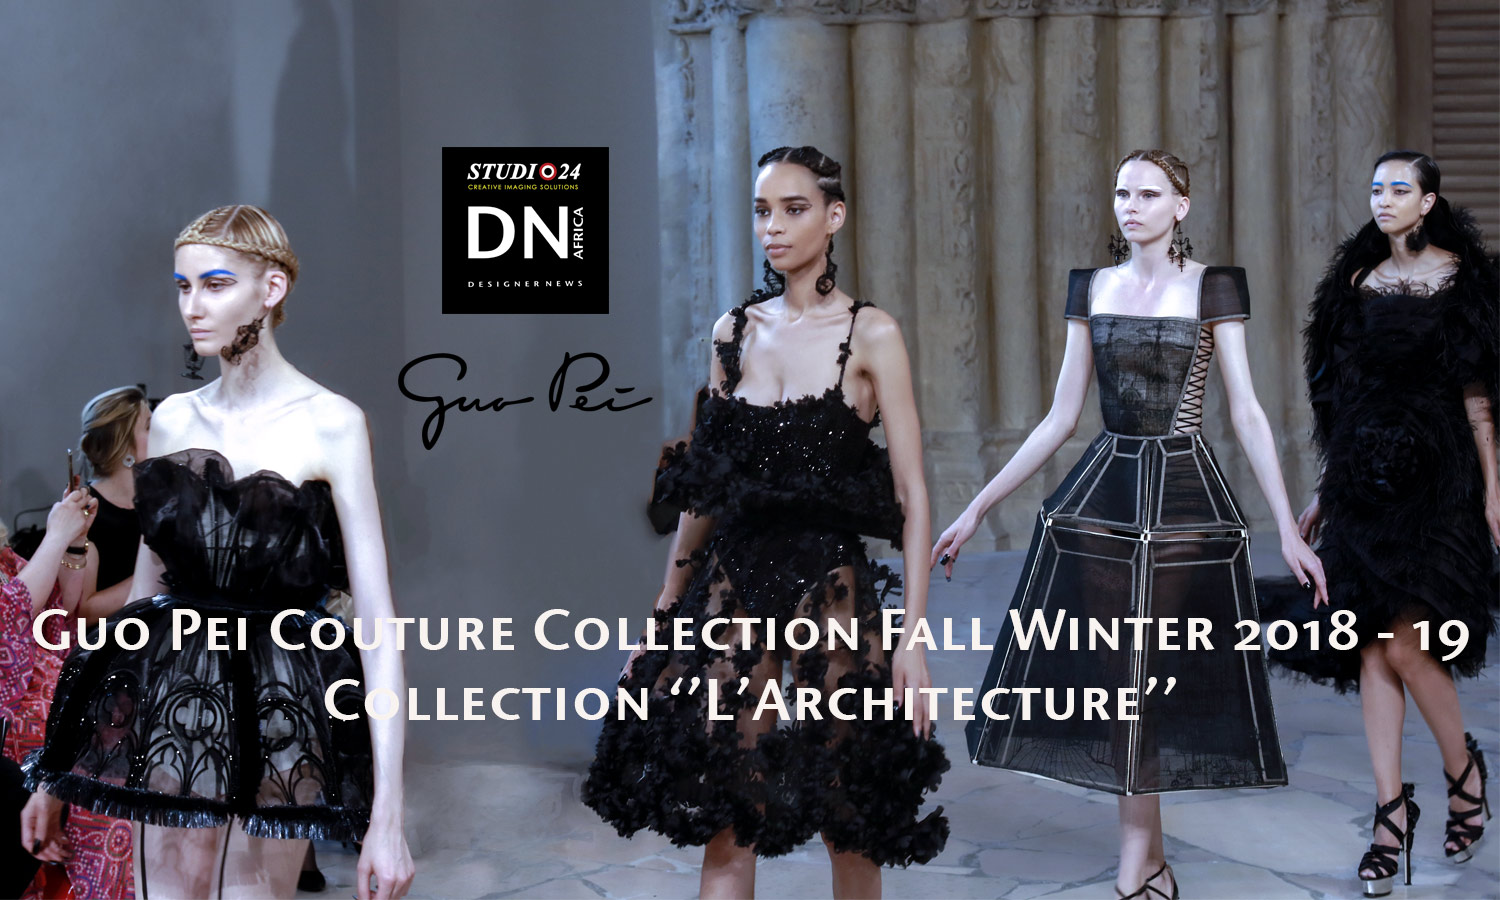 AFRICAN FASHION STYLE MAGAZINE - PARIS FASHION WEEK - GUO PEI COUTURE-COLLECTION-FALL-WINTER-2018-19-L'ARCHITECTURE - PR JACQUES BABANDO COMMUNICATION - DN AFRICA -STUDIO 24 NIGERIA